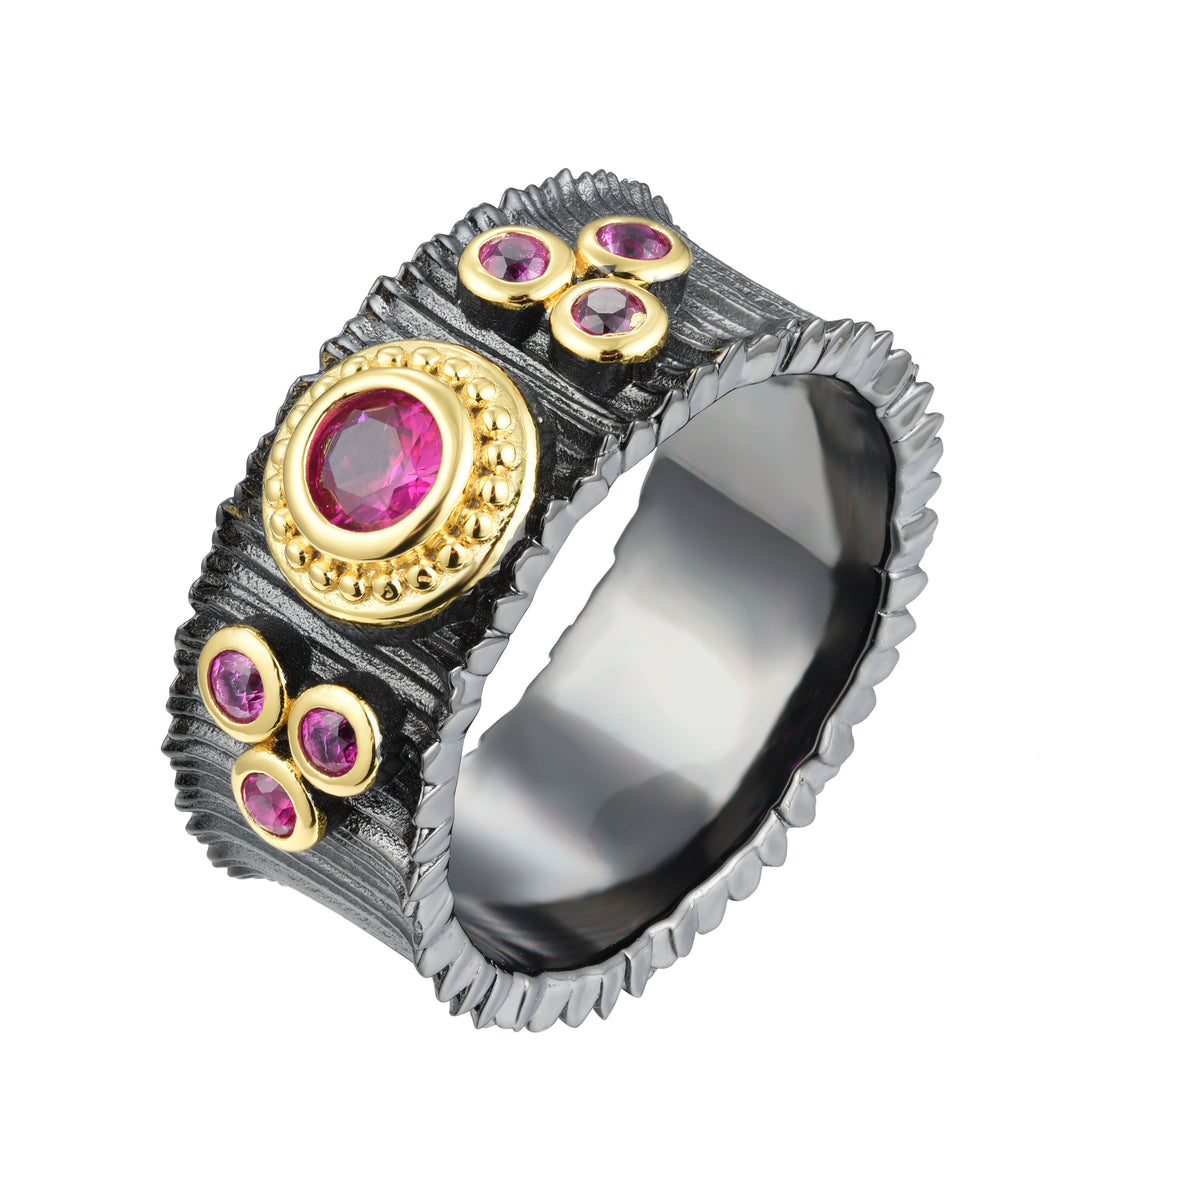 Salacia | Samos Ring | 925 Silver | Ruby CZ | 18K Gold & Black Rhodium Plated